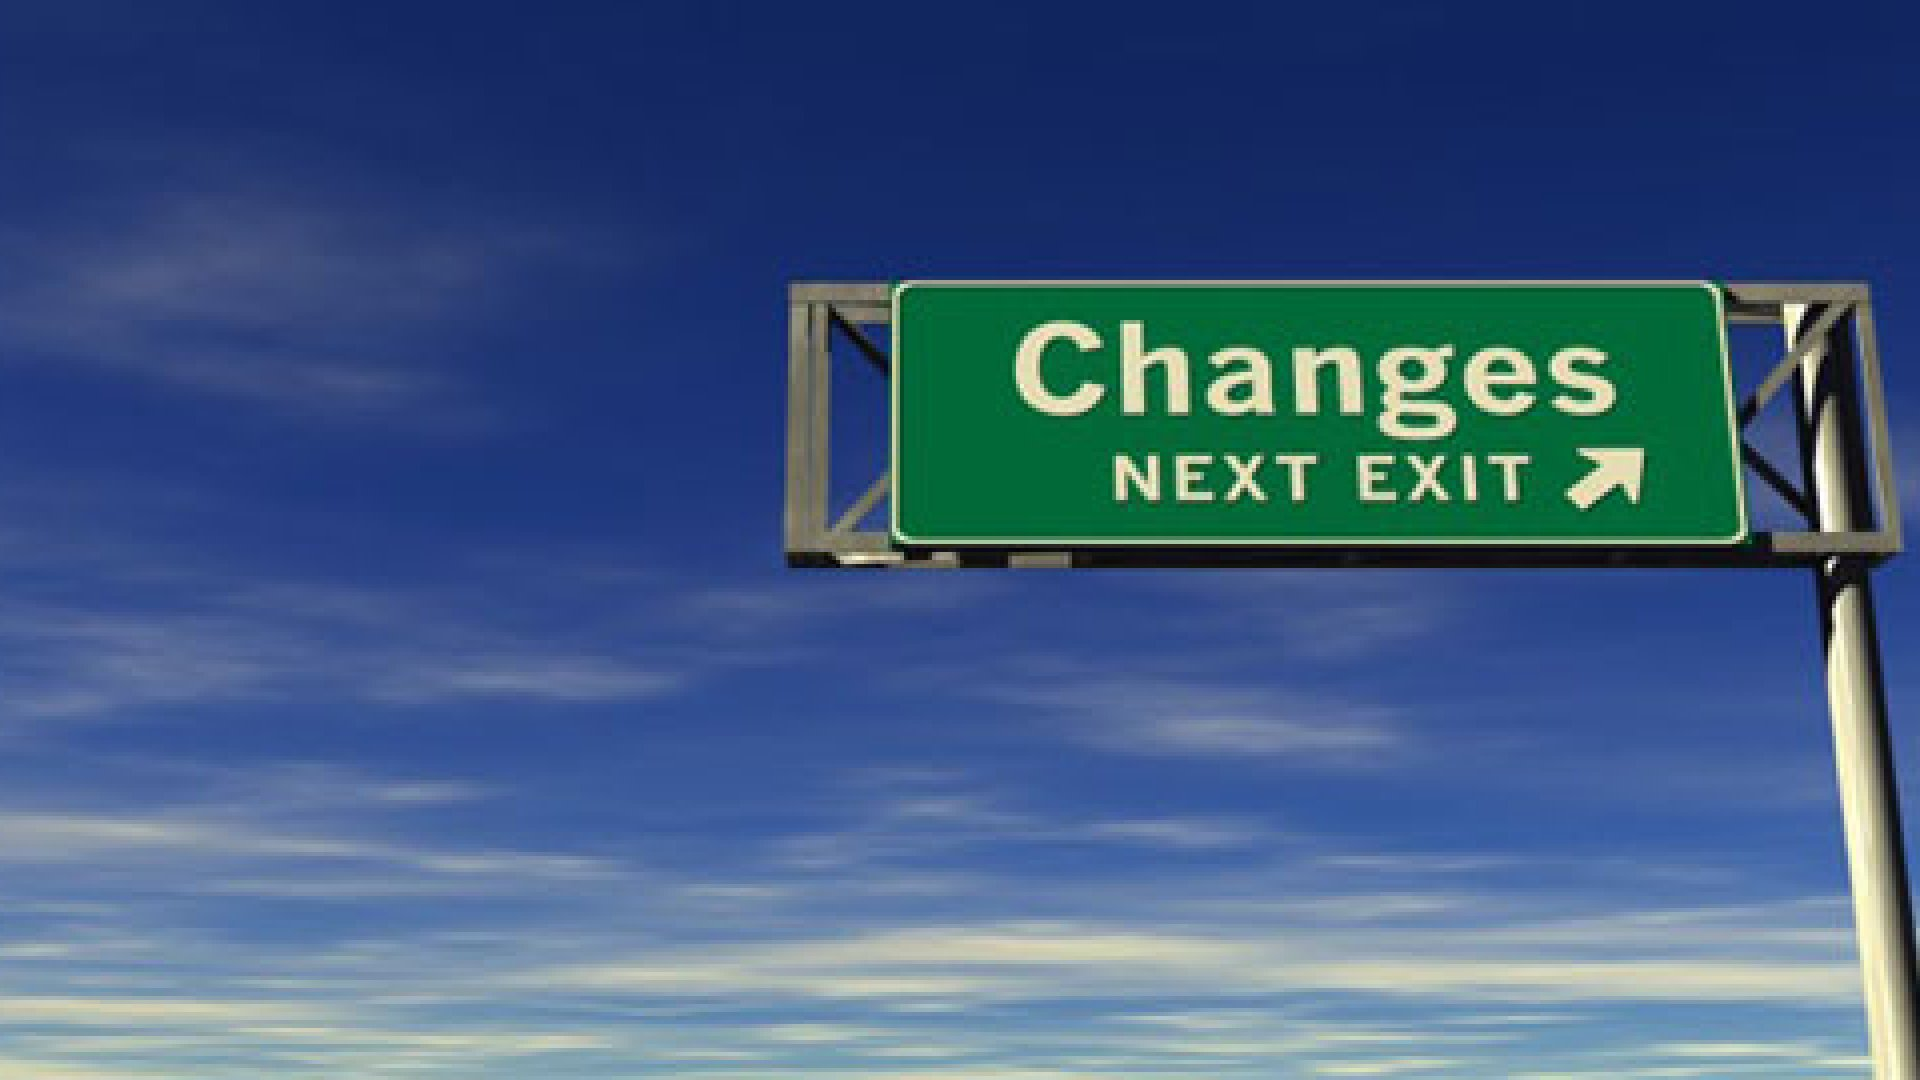 It's not always easy to get everyone to follow change within your company.